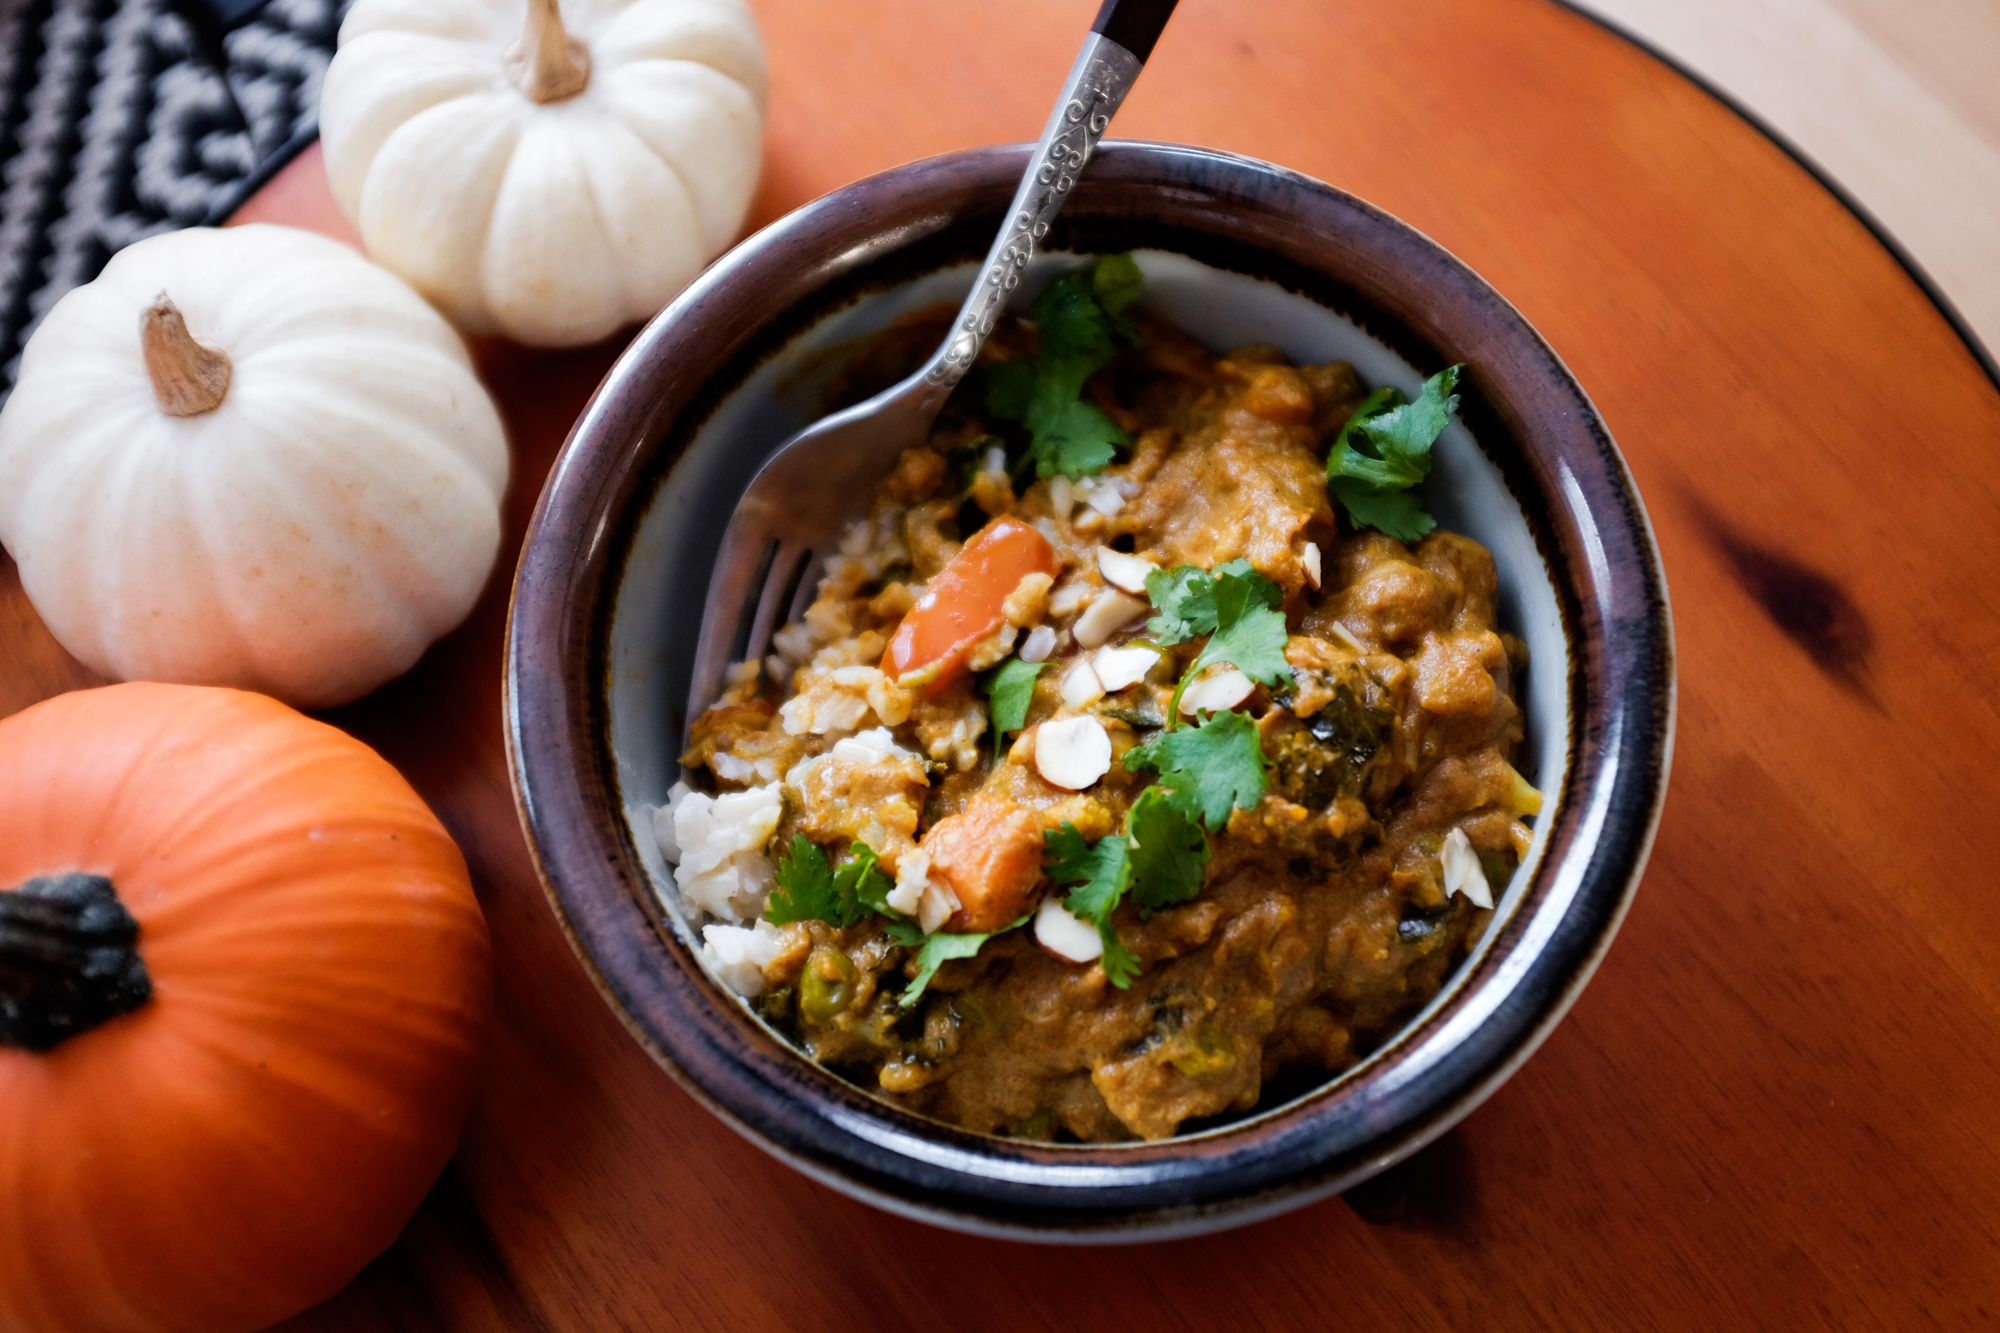 03-vegan-curry-oct-2015-web-6656